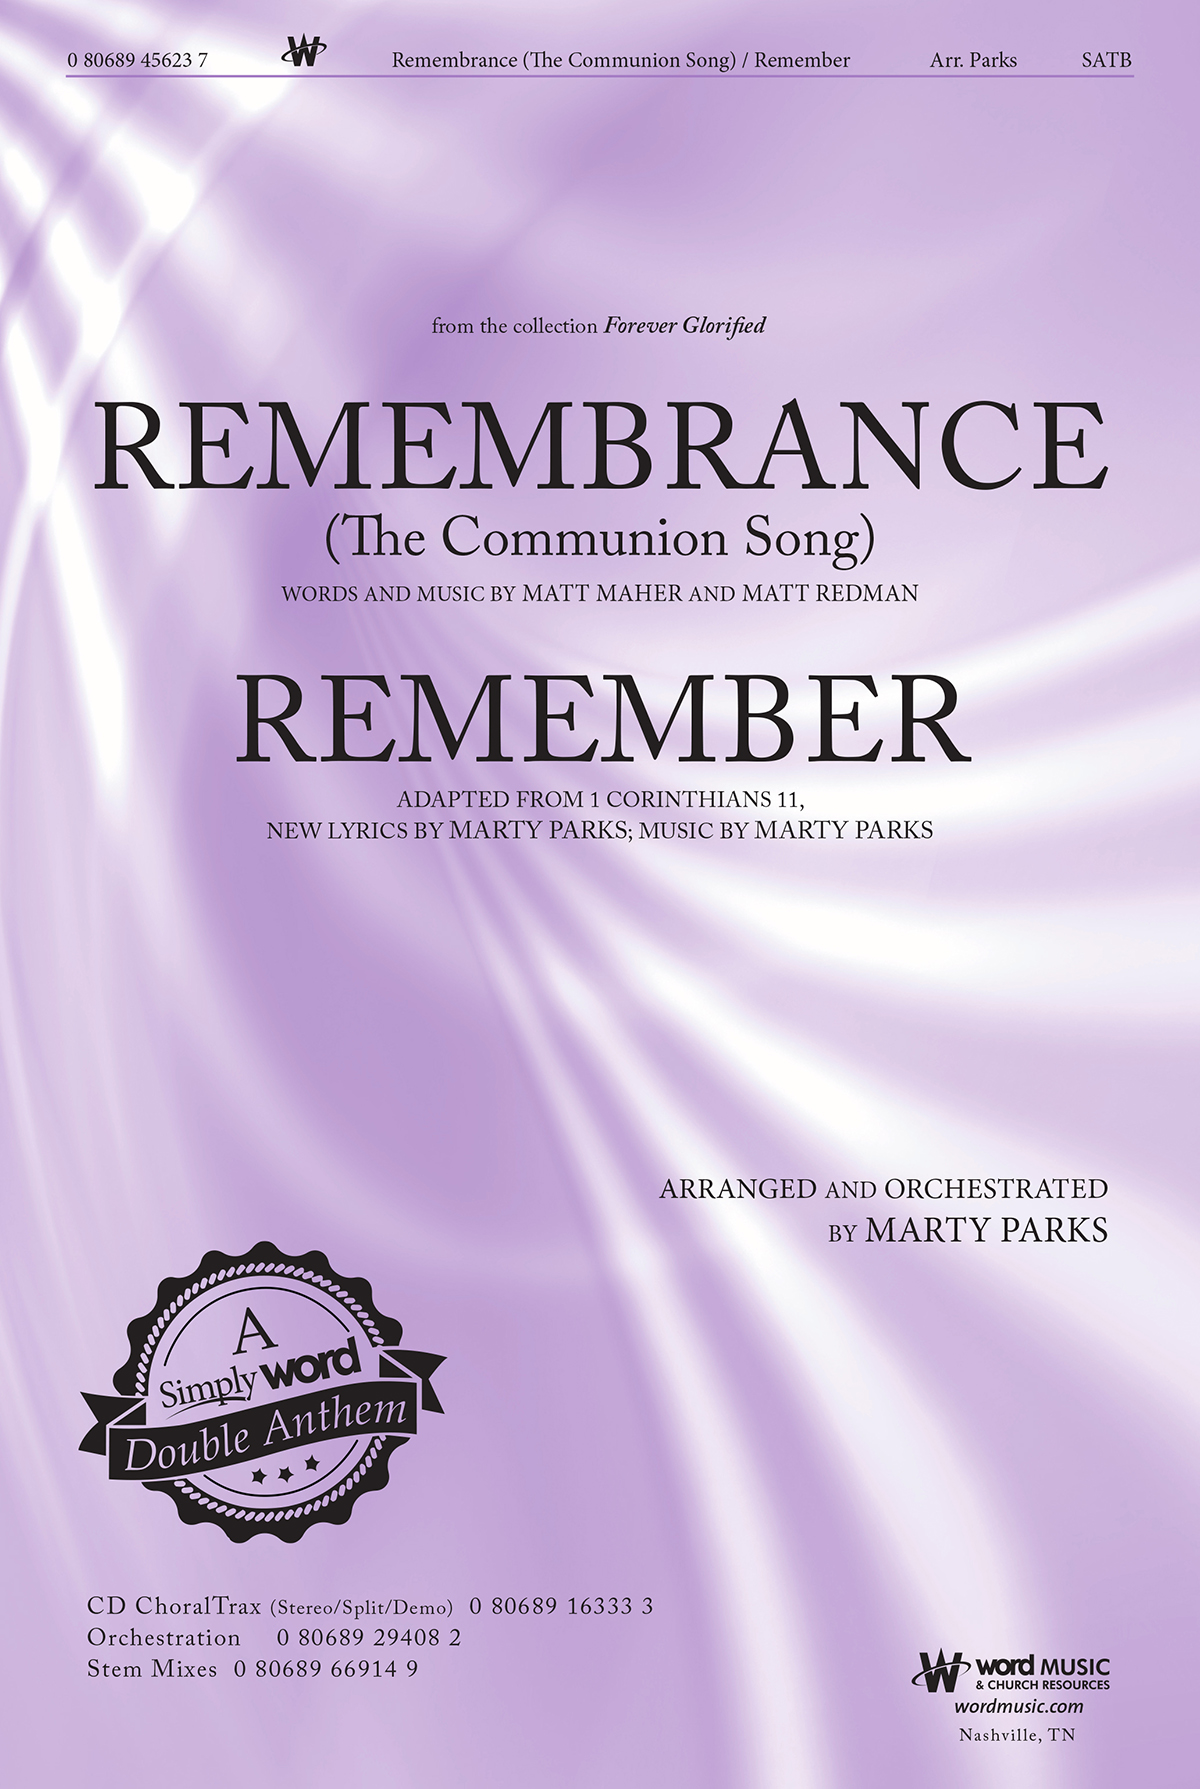 Remembrance (The Communion Song) and Remember